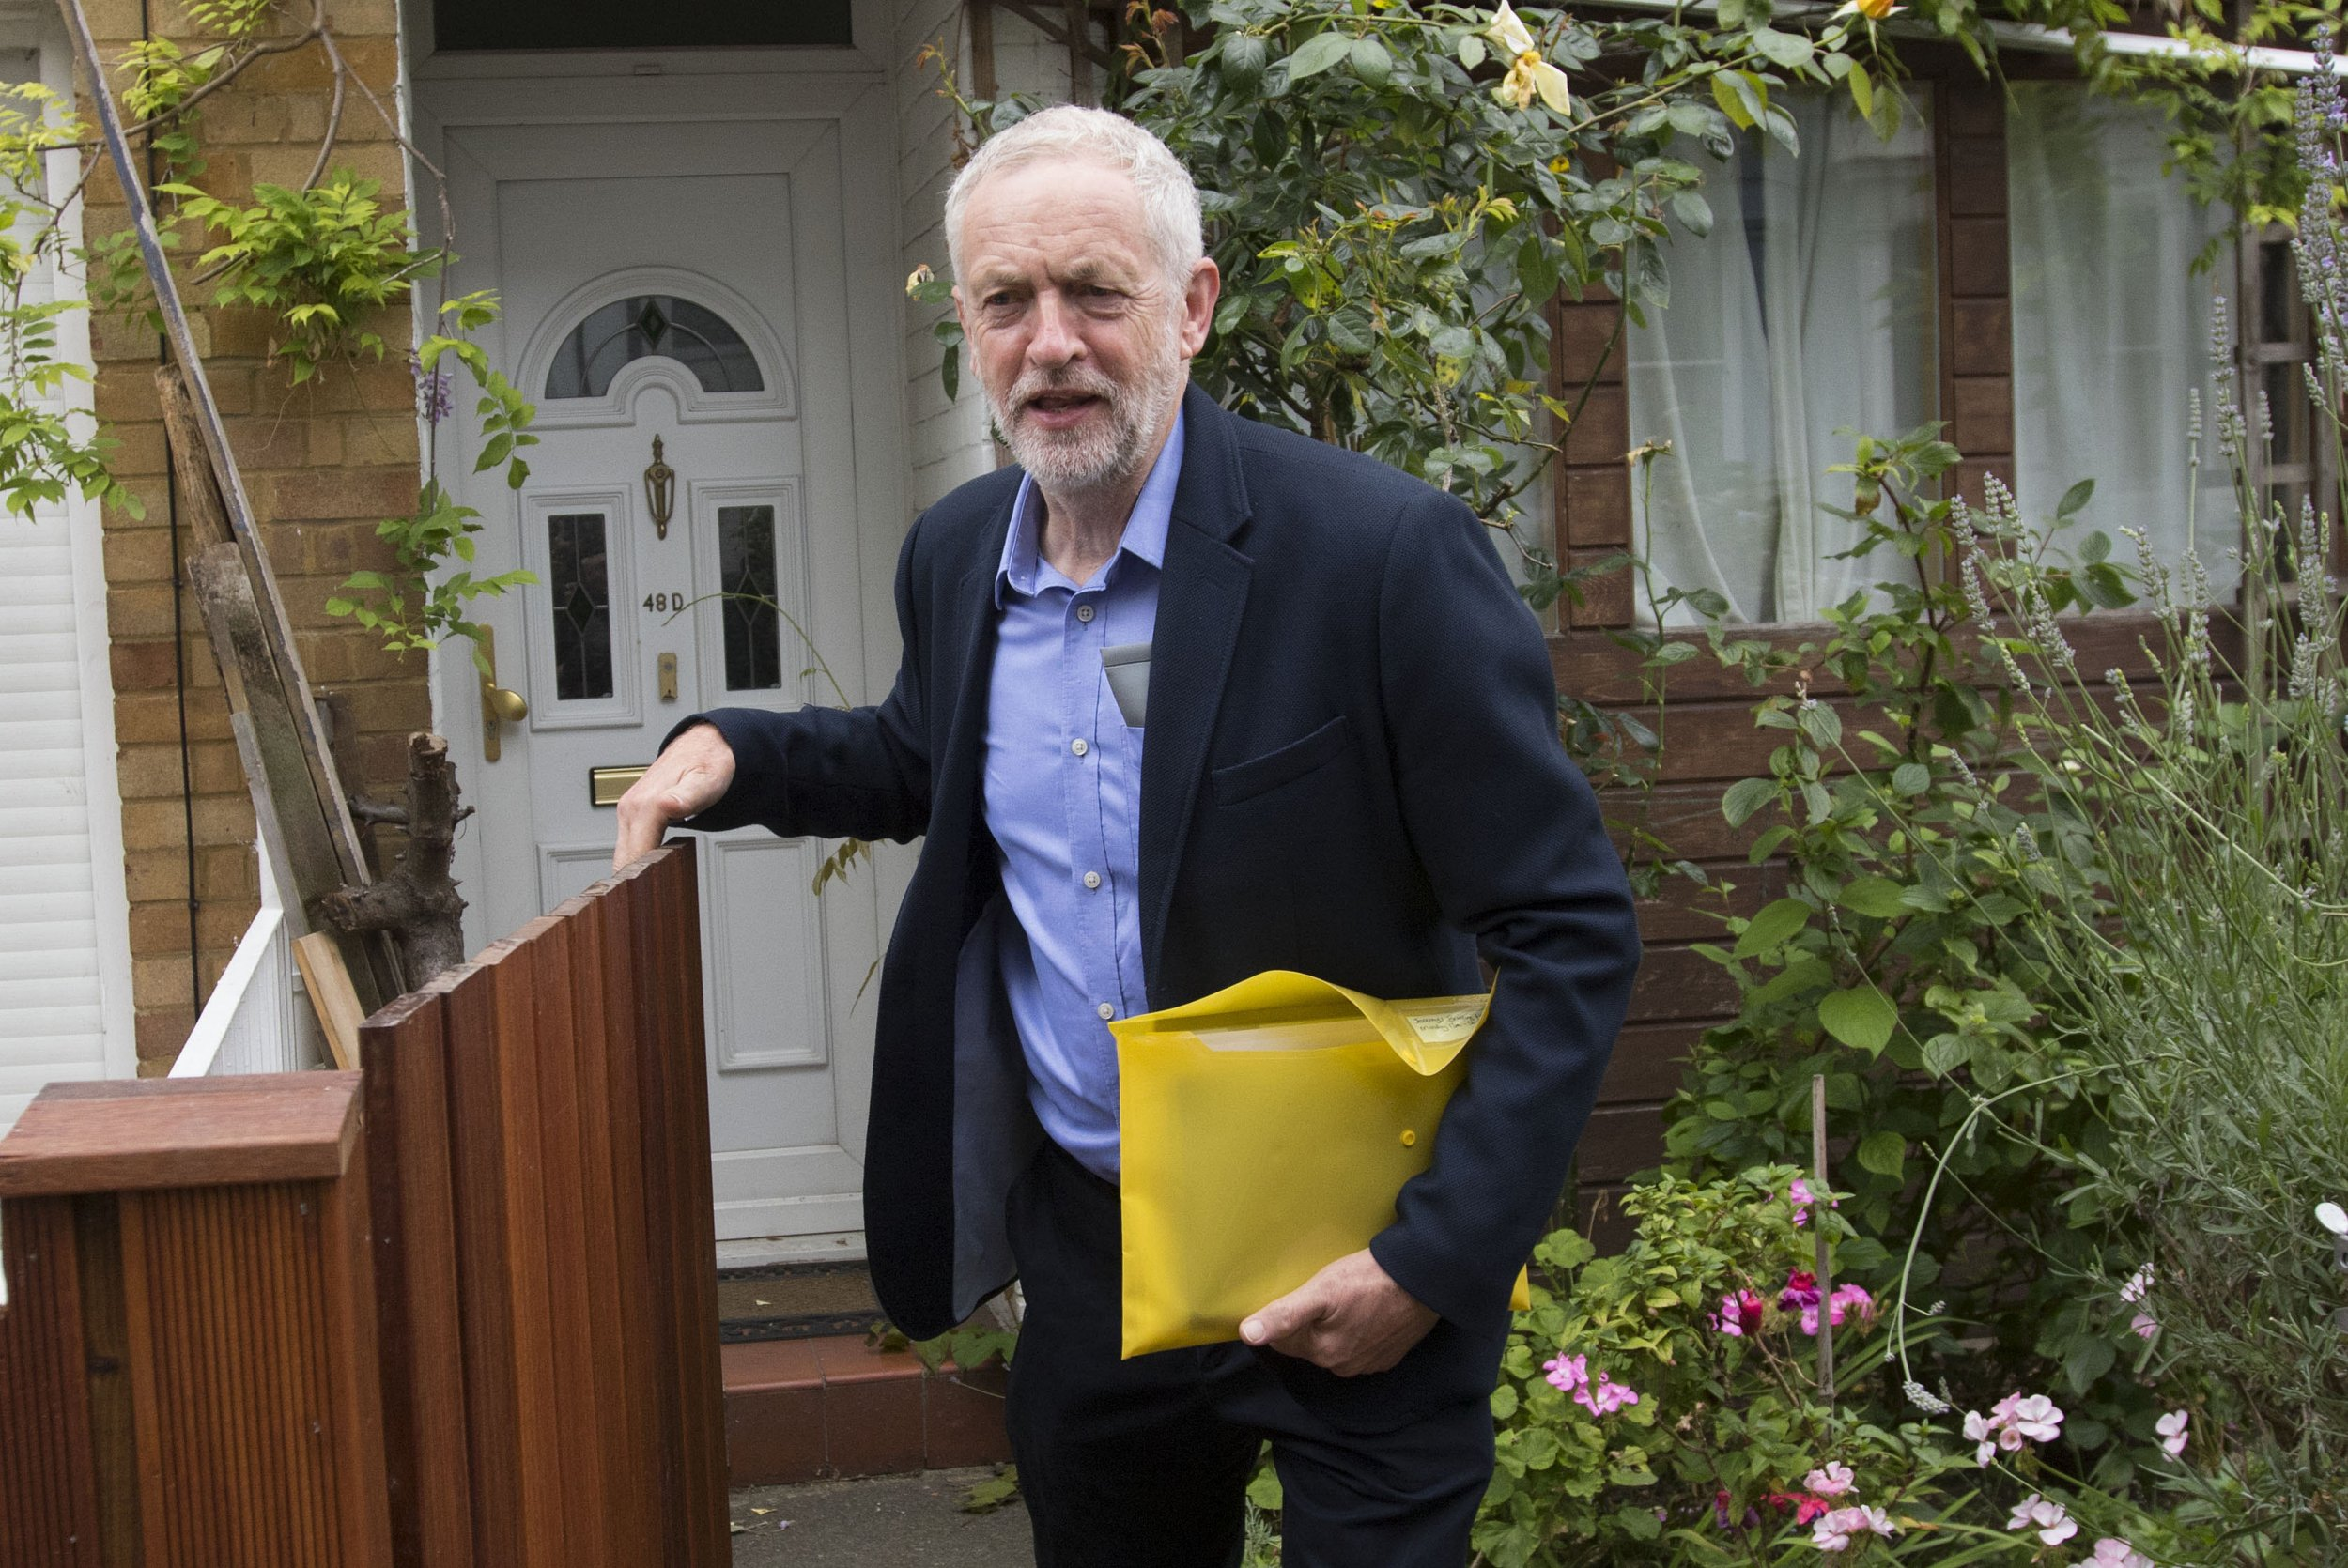 Labour Party leader Jeremy Corbyn leaves his home in north London, as Angela Eagle insisted she can save Labour as she prepares to formally launch a leadership contest with the potential to rip the party apart. PRESS ASSOCIATION Photo. Picture date: Monday July 11, 2016. The former shadow business secretary is hoping to oust Corbyn amid warnings the bitter rows over the party leadership could lead to a legal wrangle or lasting split. See PA story POLITICS Labour. Photo credit should read: Rick Findler/PA Wire